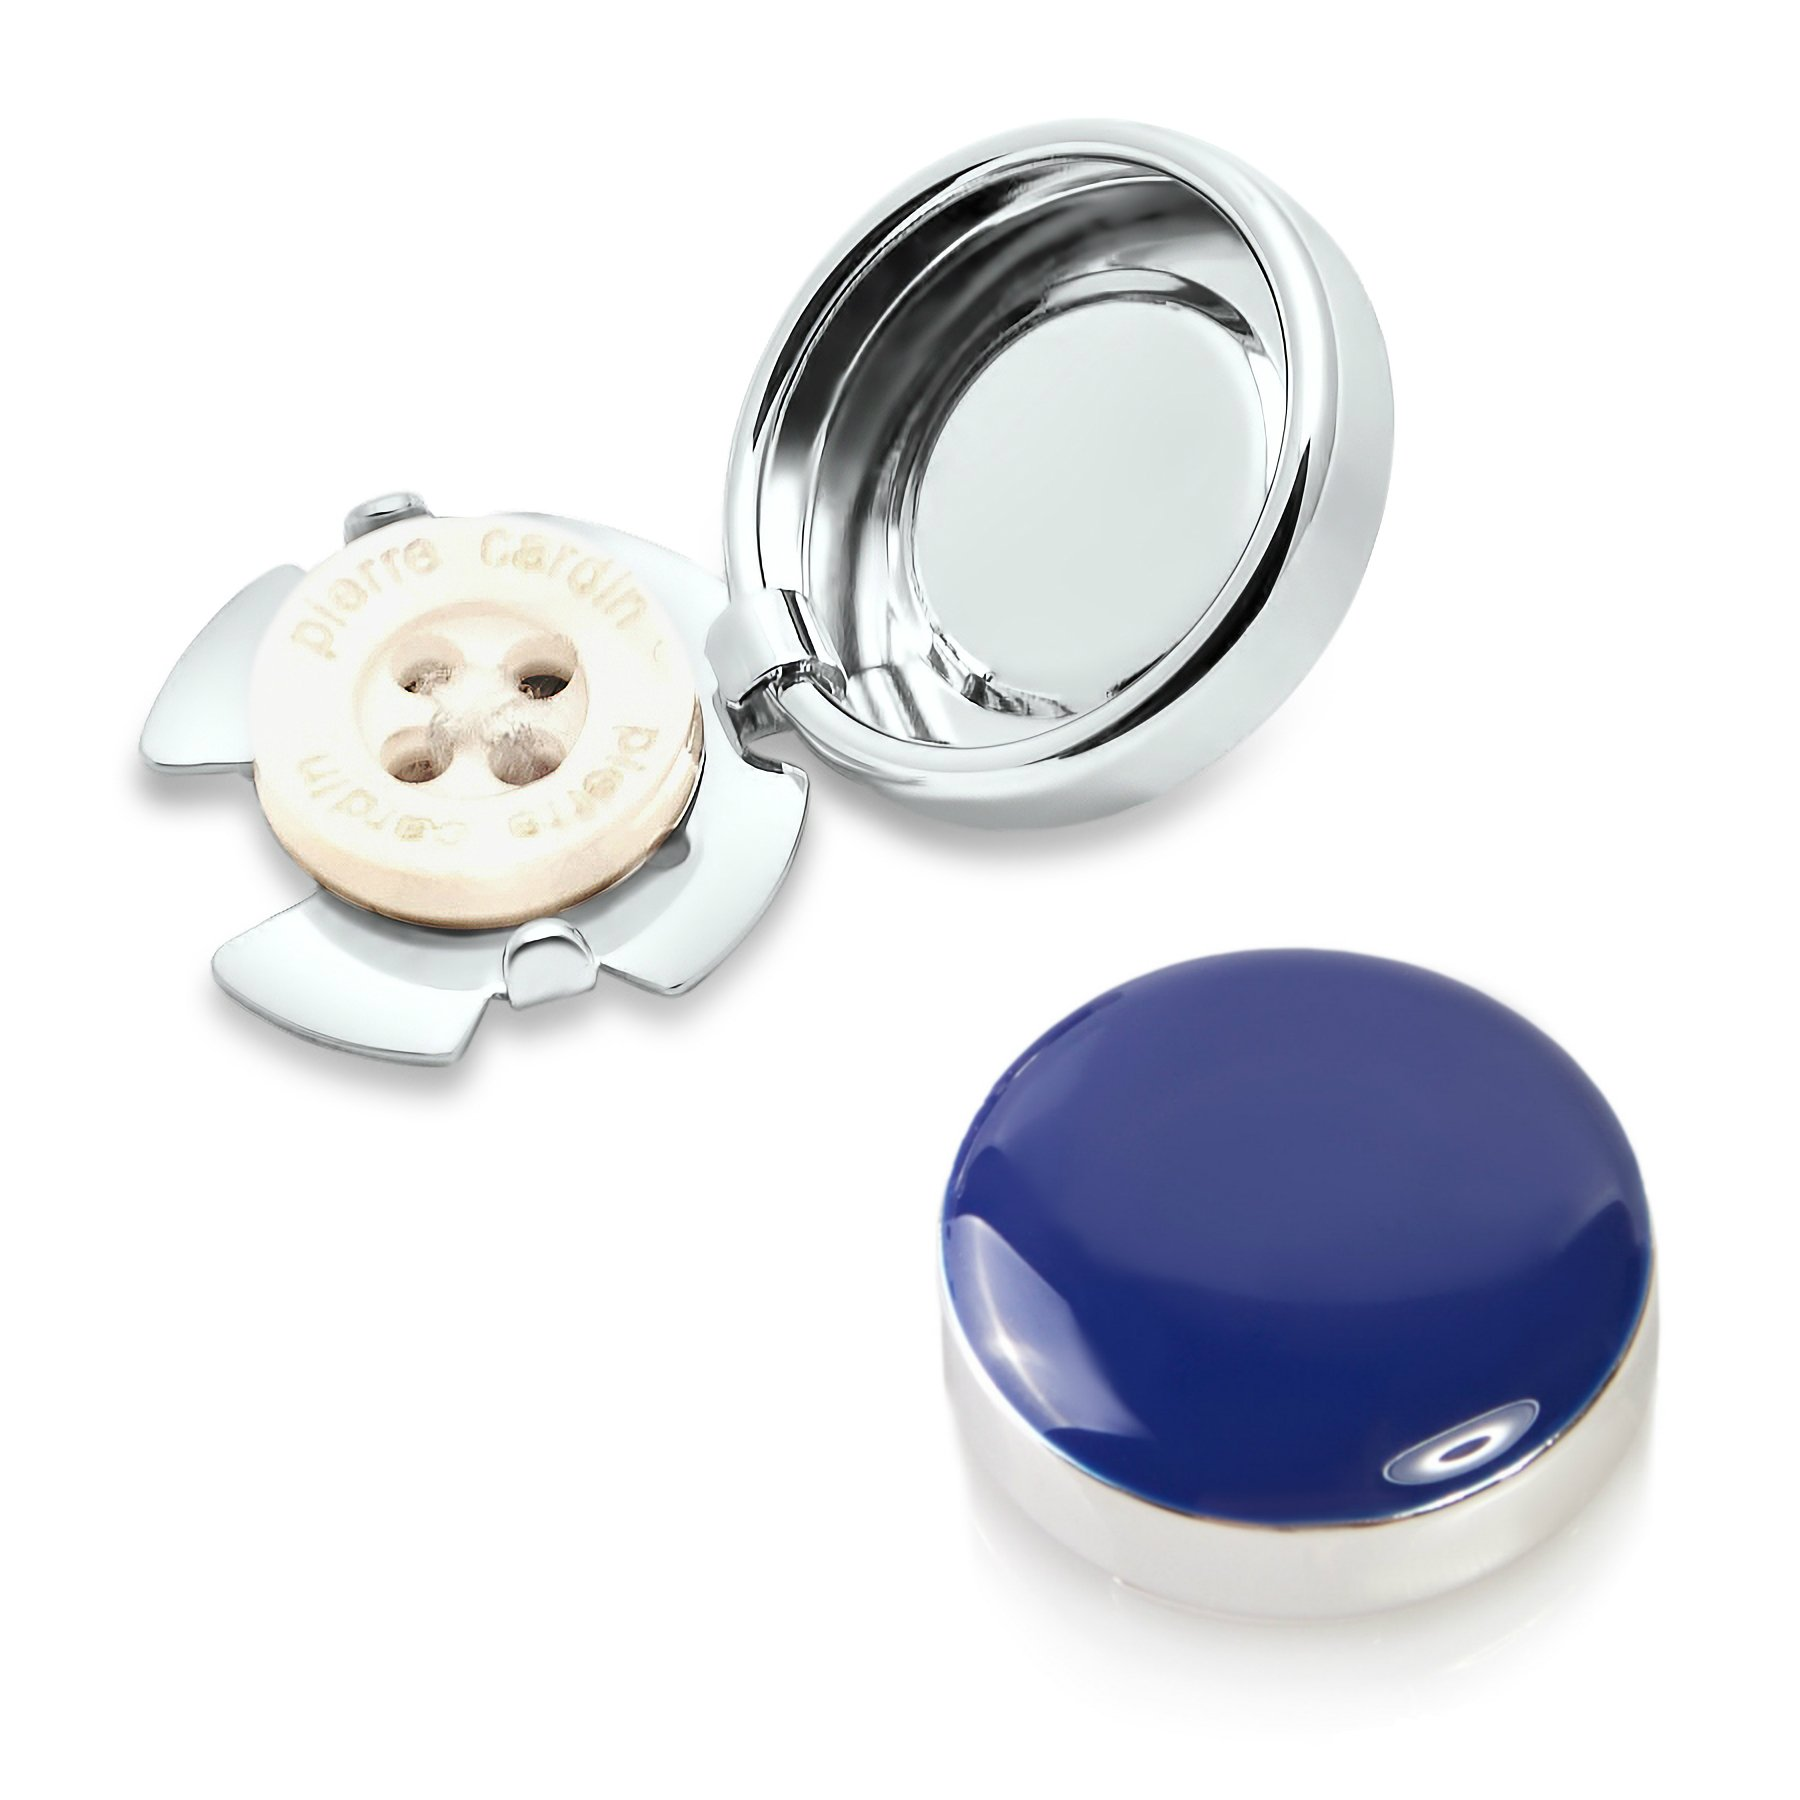 Navy & Silver, Button Covers - Cuff Link Alternative for Shirts, Cuffs and Collars (CS-dia US)